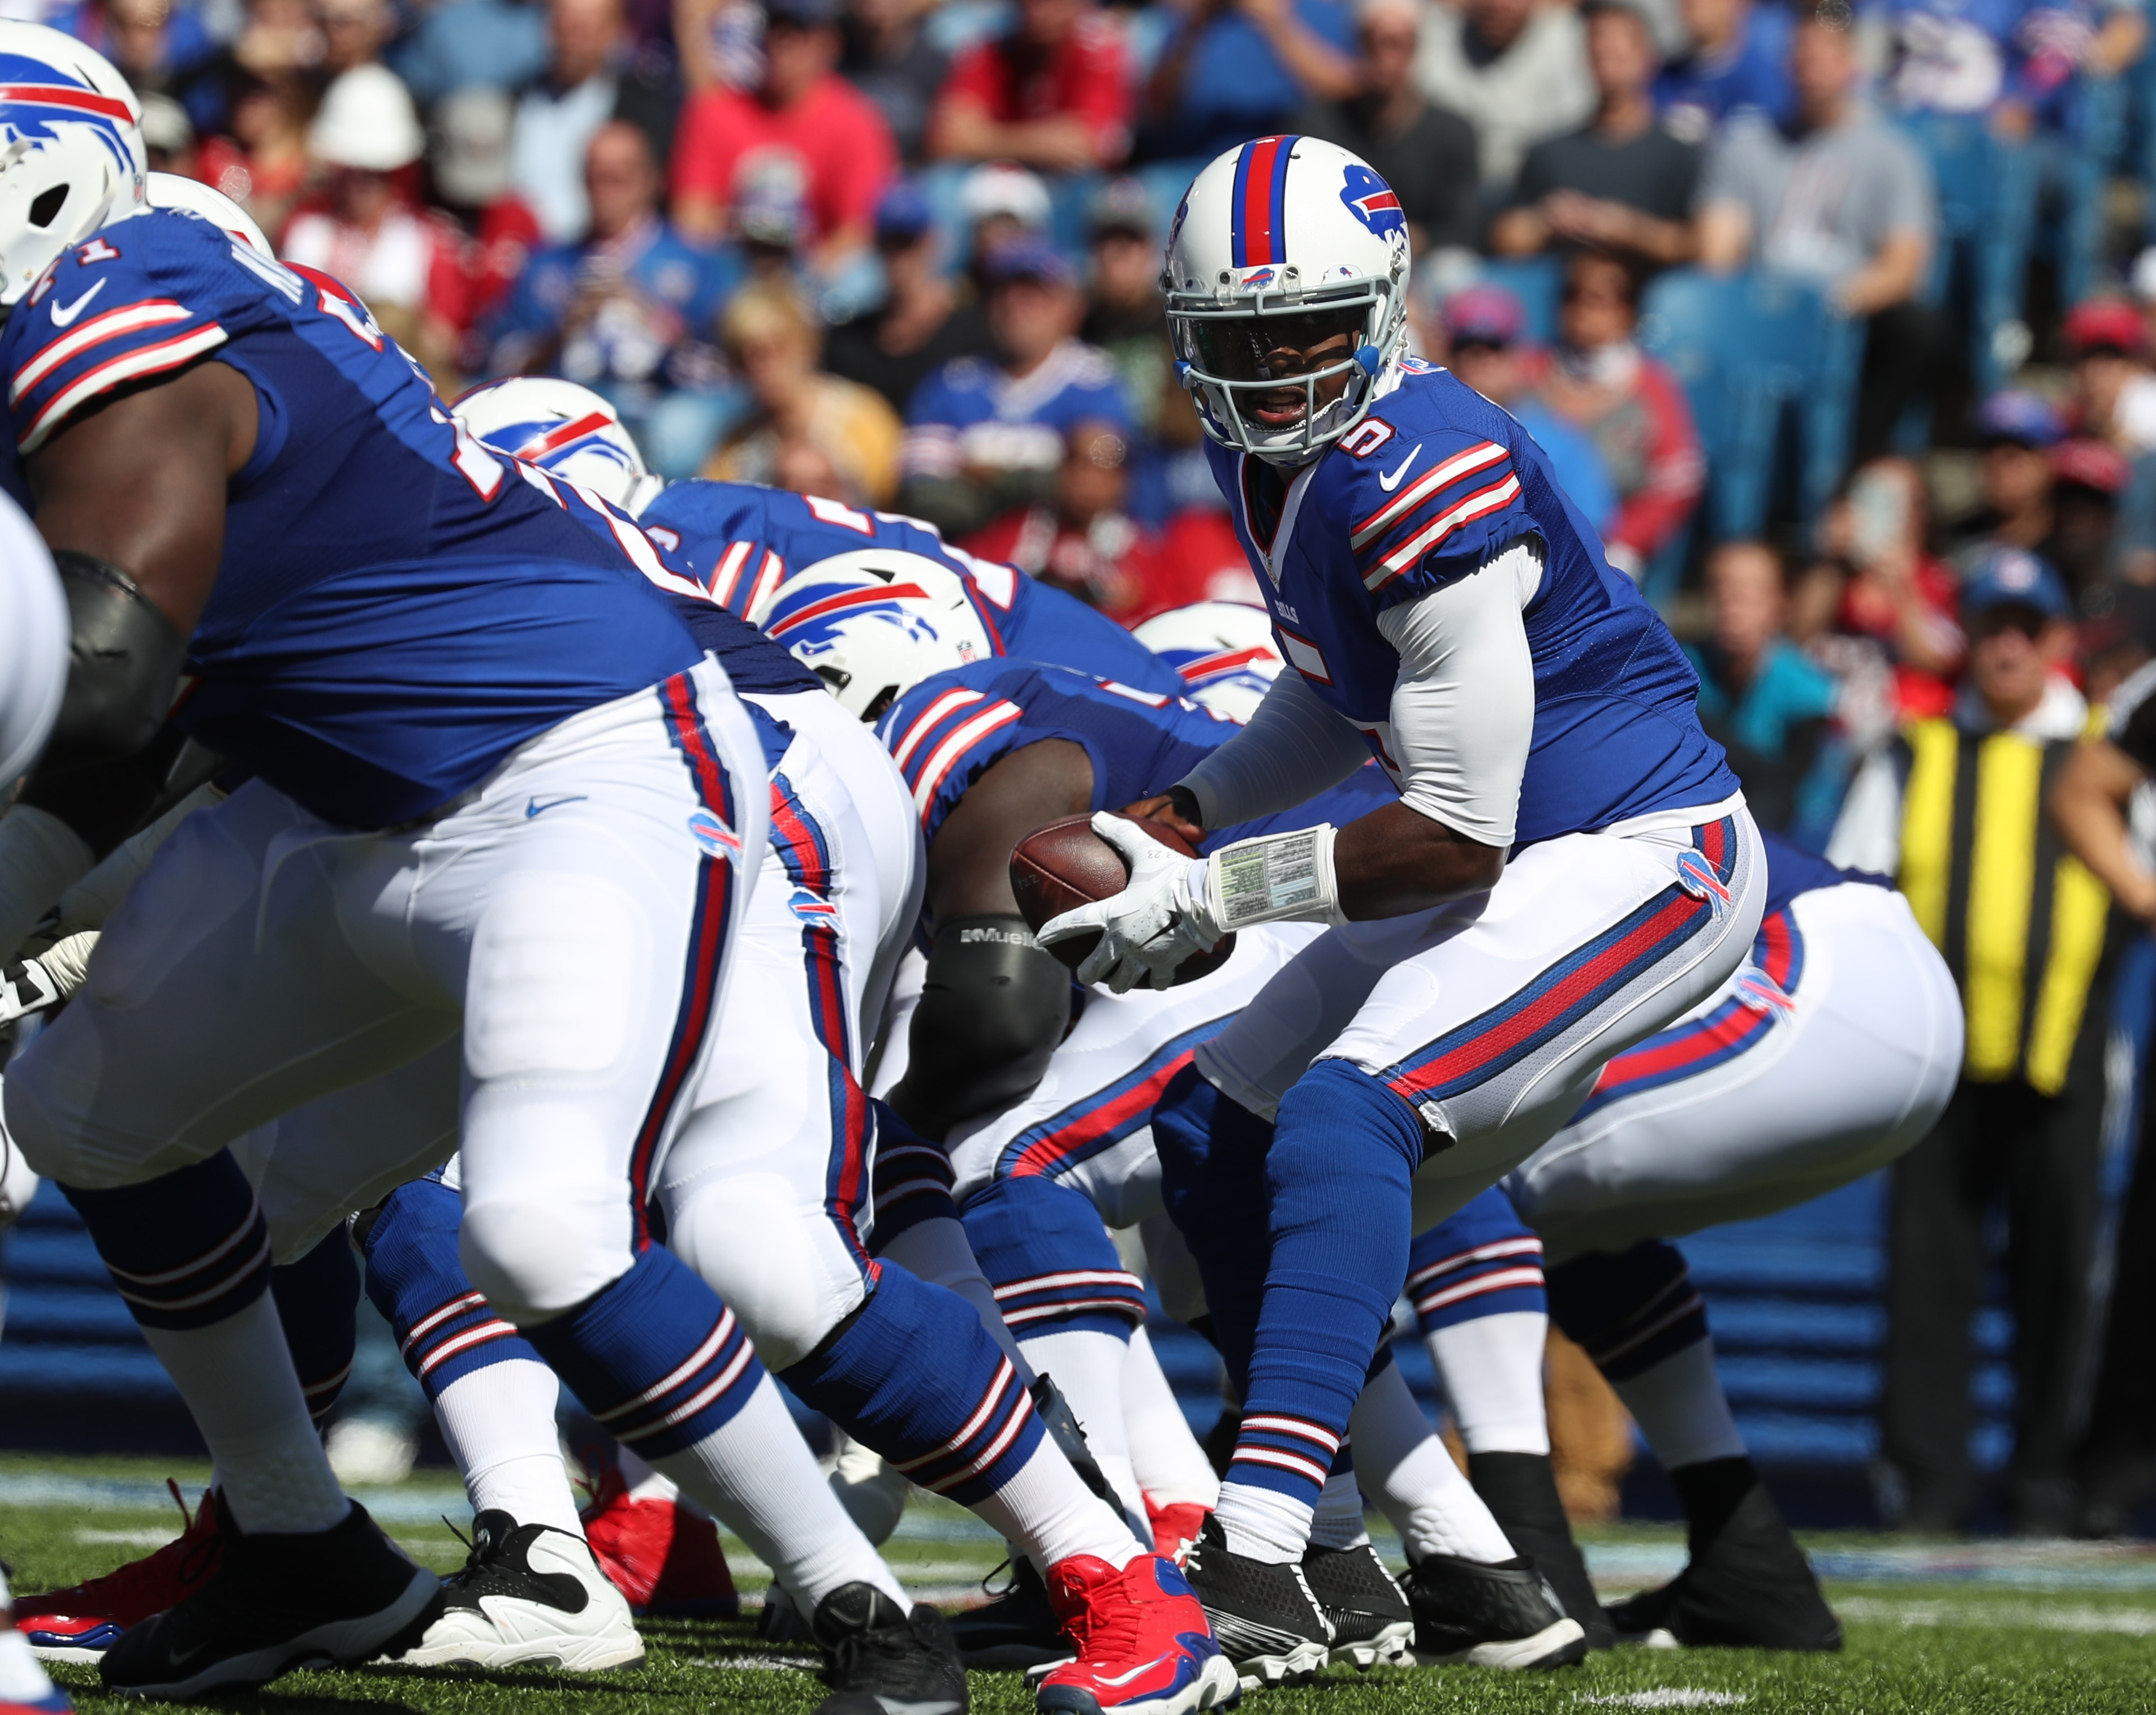 Buffalo Bills quarterback Tyrod Taylor takes a snap in the first quarter against the Arizona Cardinals at New Era Field in Orchard Park on Sept. 25, 2016.  (James P. McCoy/Buffalo News)